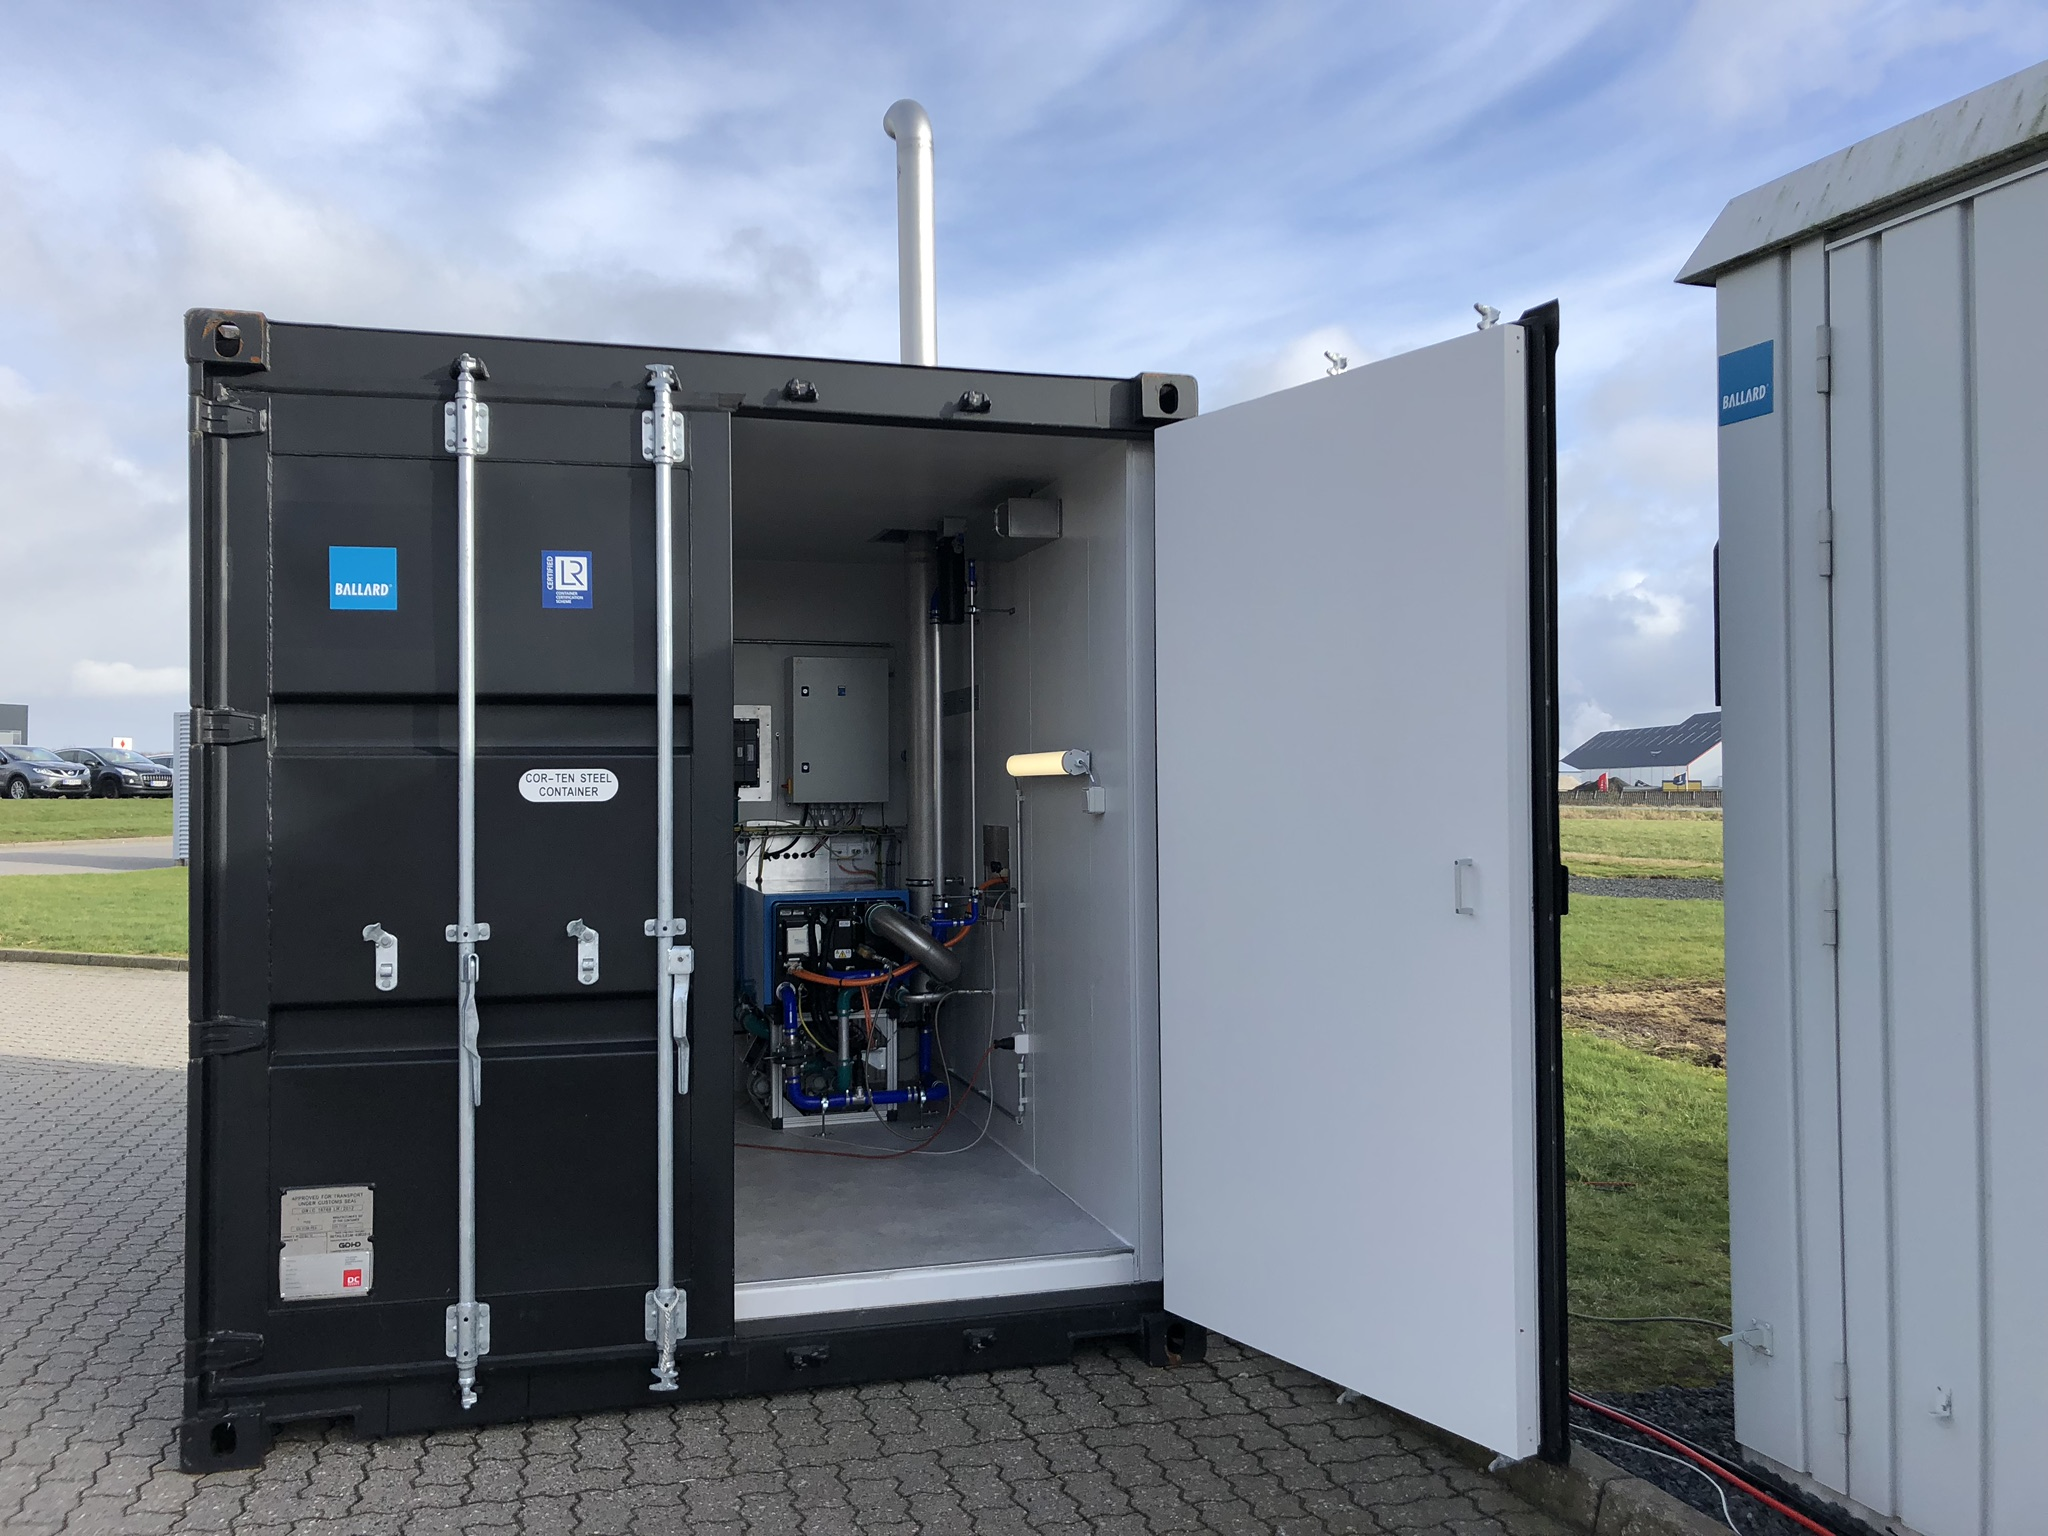 A fuel cell was shipped from Ballard in Denmark to Kongsberg in